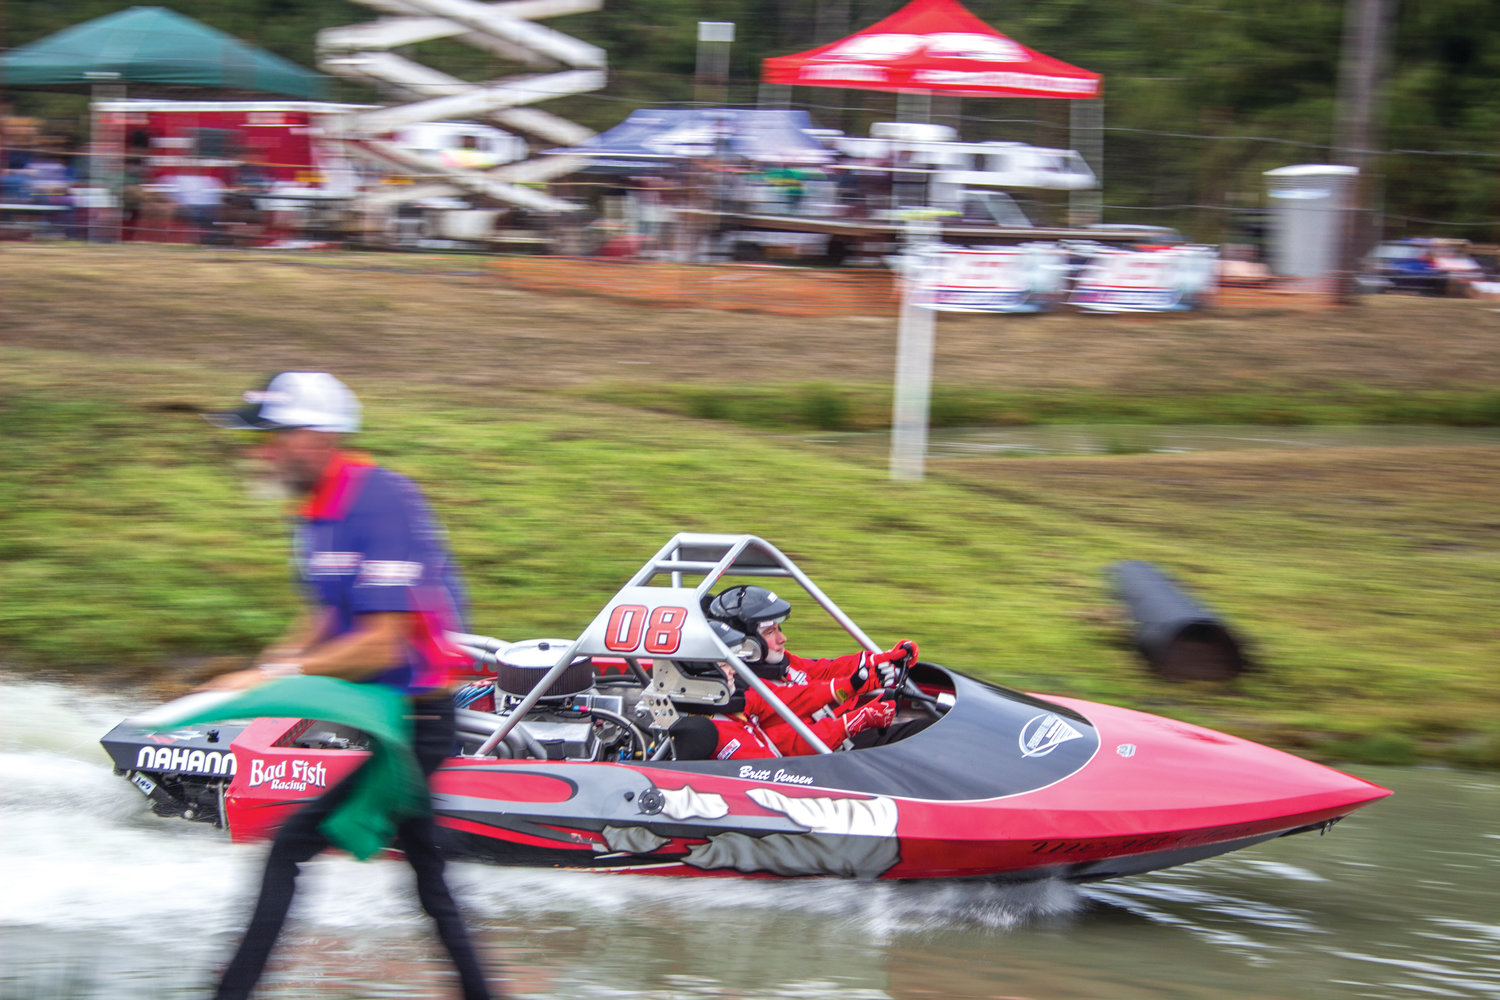 Scott Jensen of Bad Fish racing launches from the starting gate in his #8 boat.